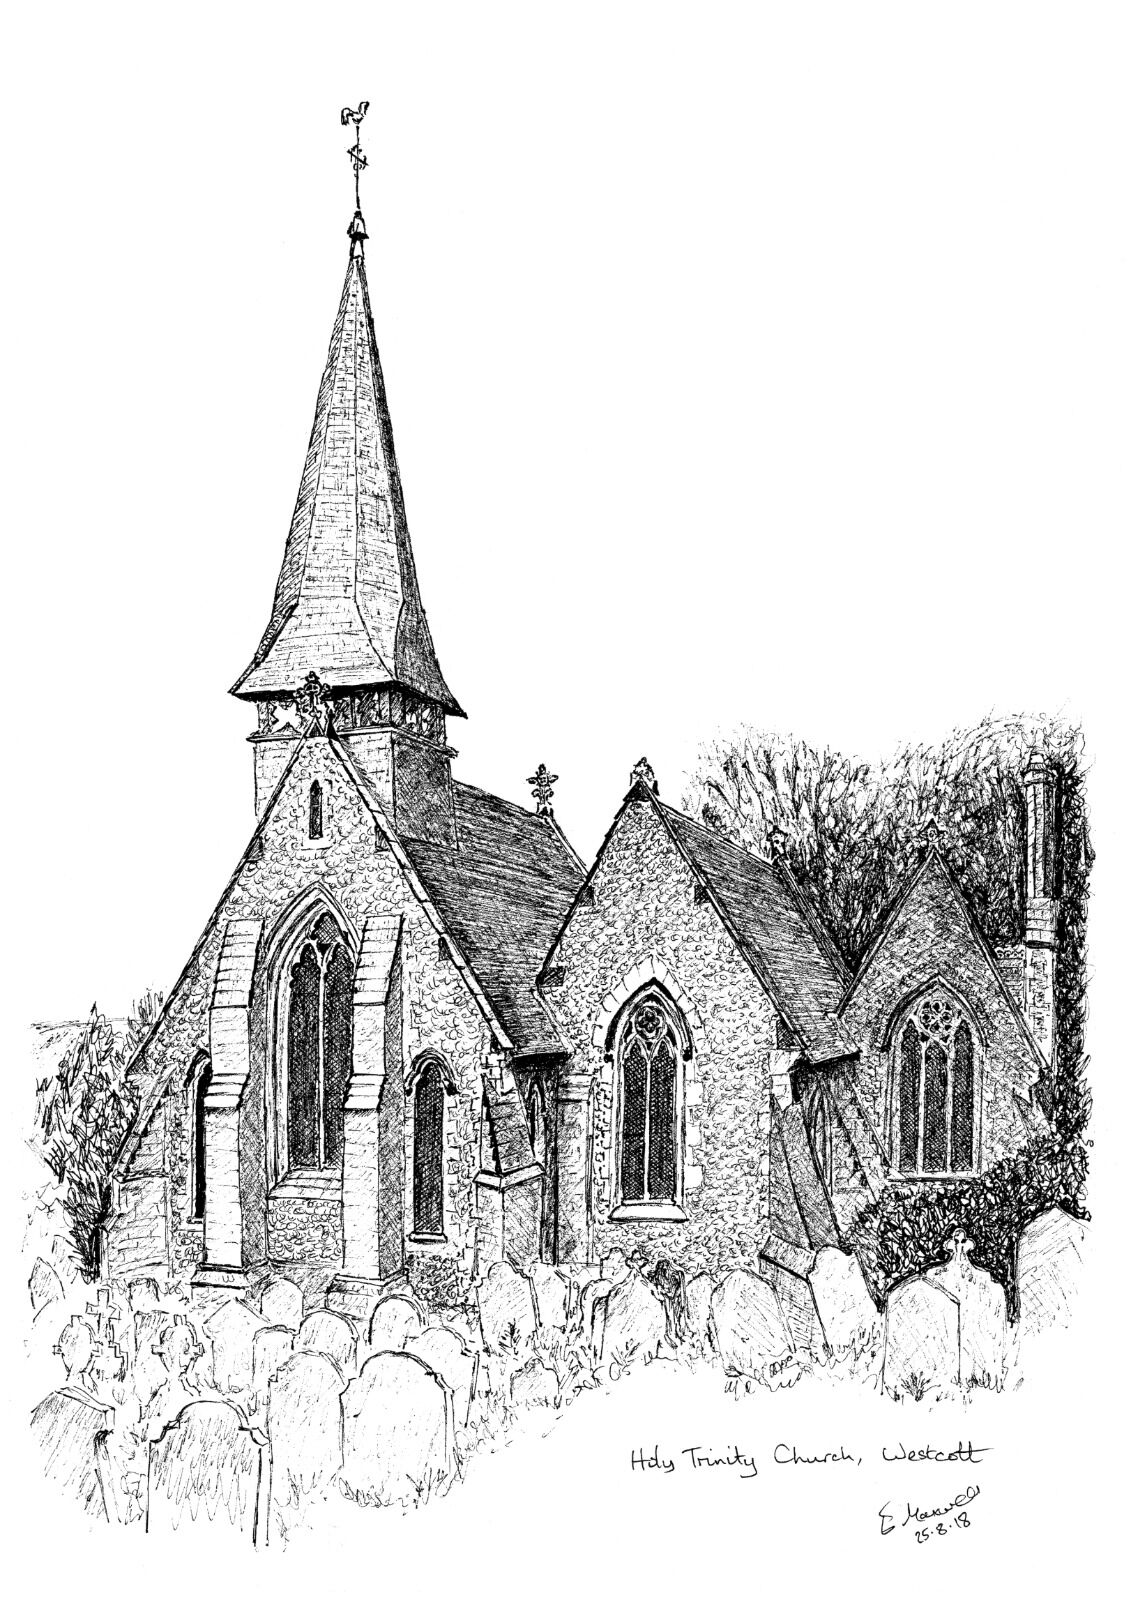 Holy Trinity Church, Westcott